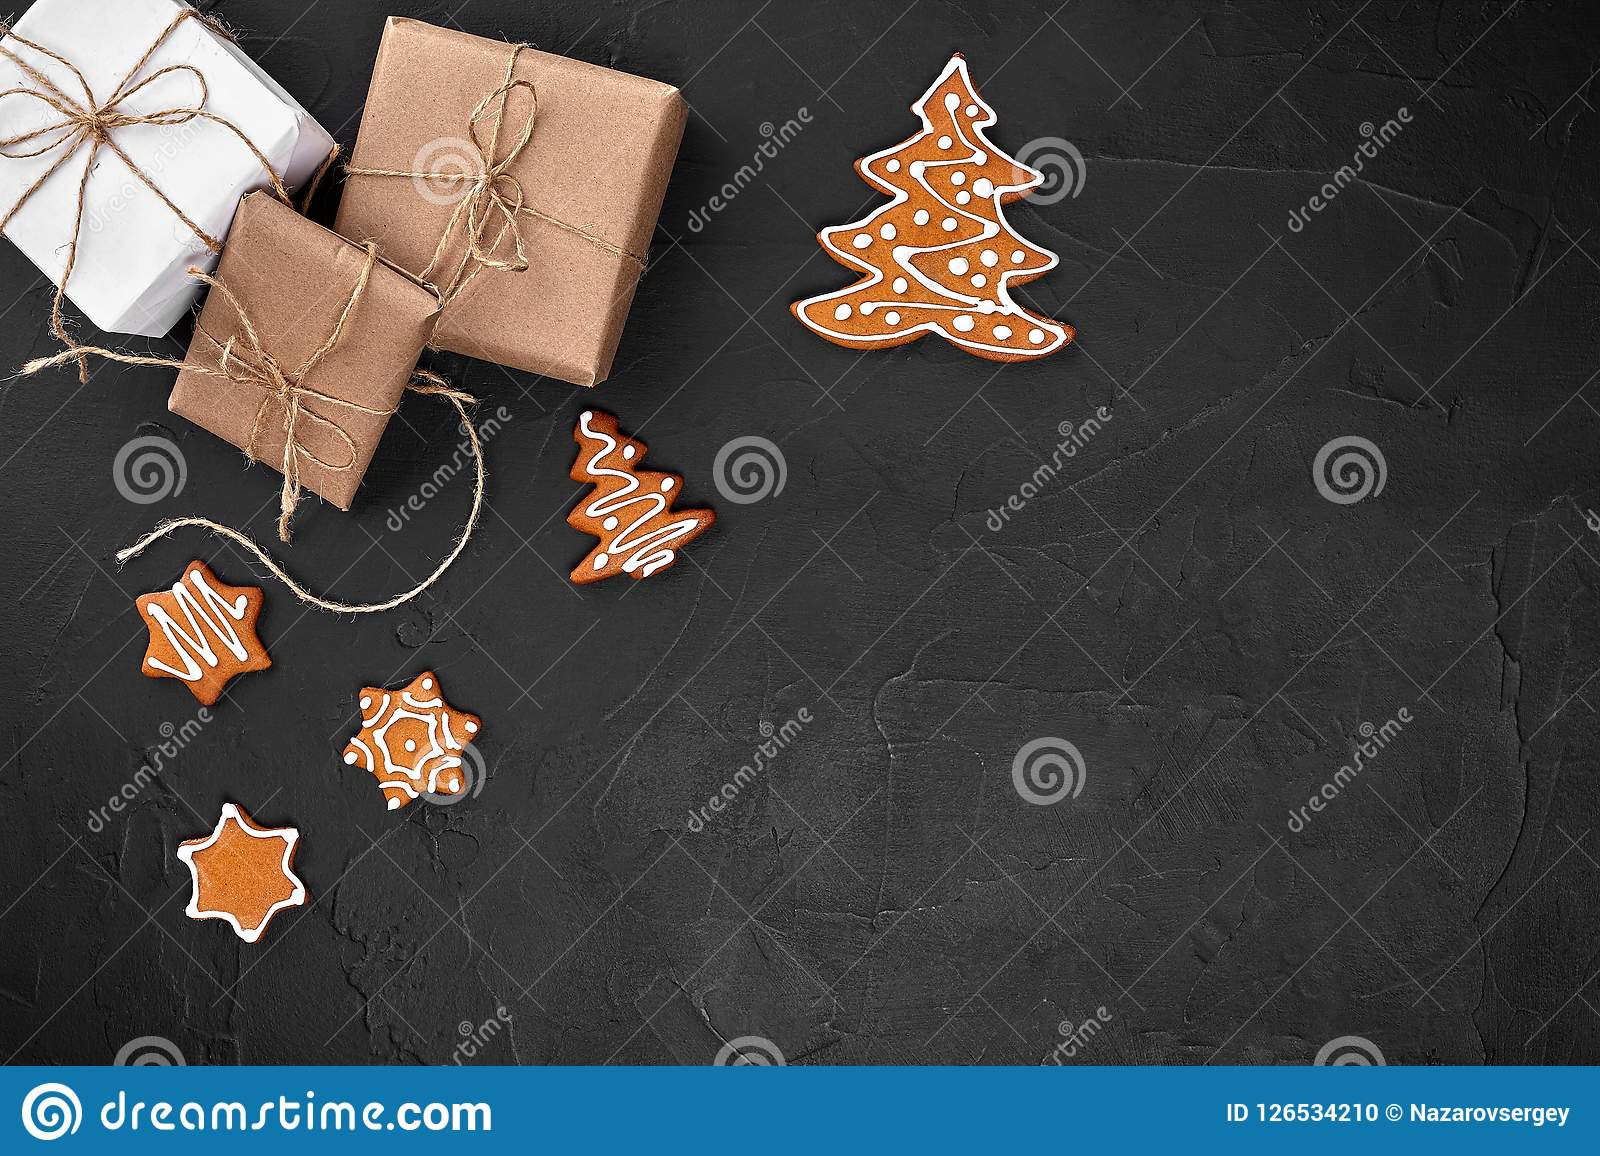 Ideas for homemade christmas gifts for family